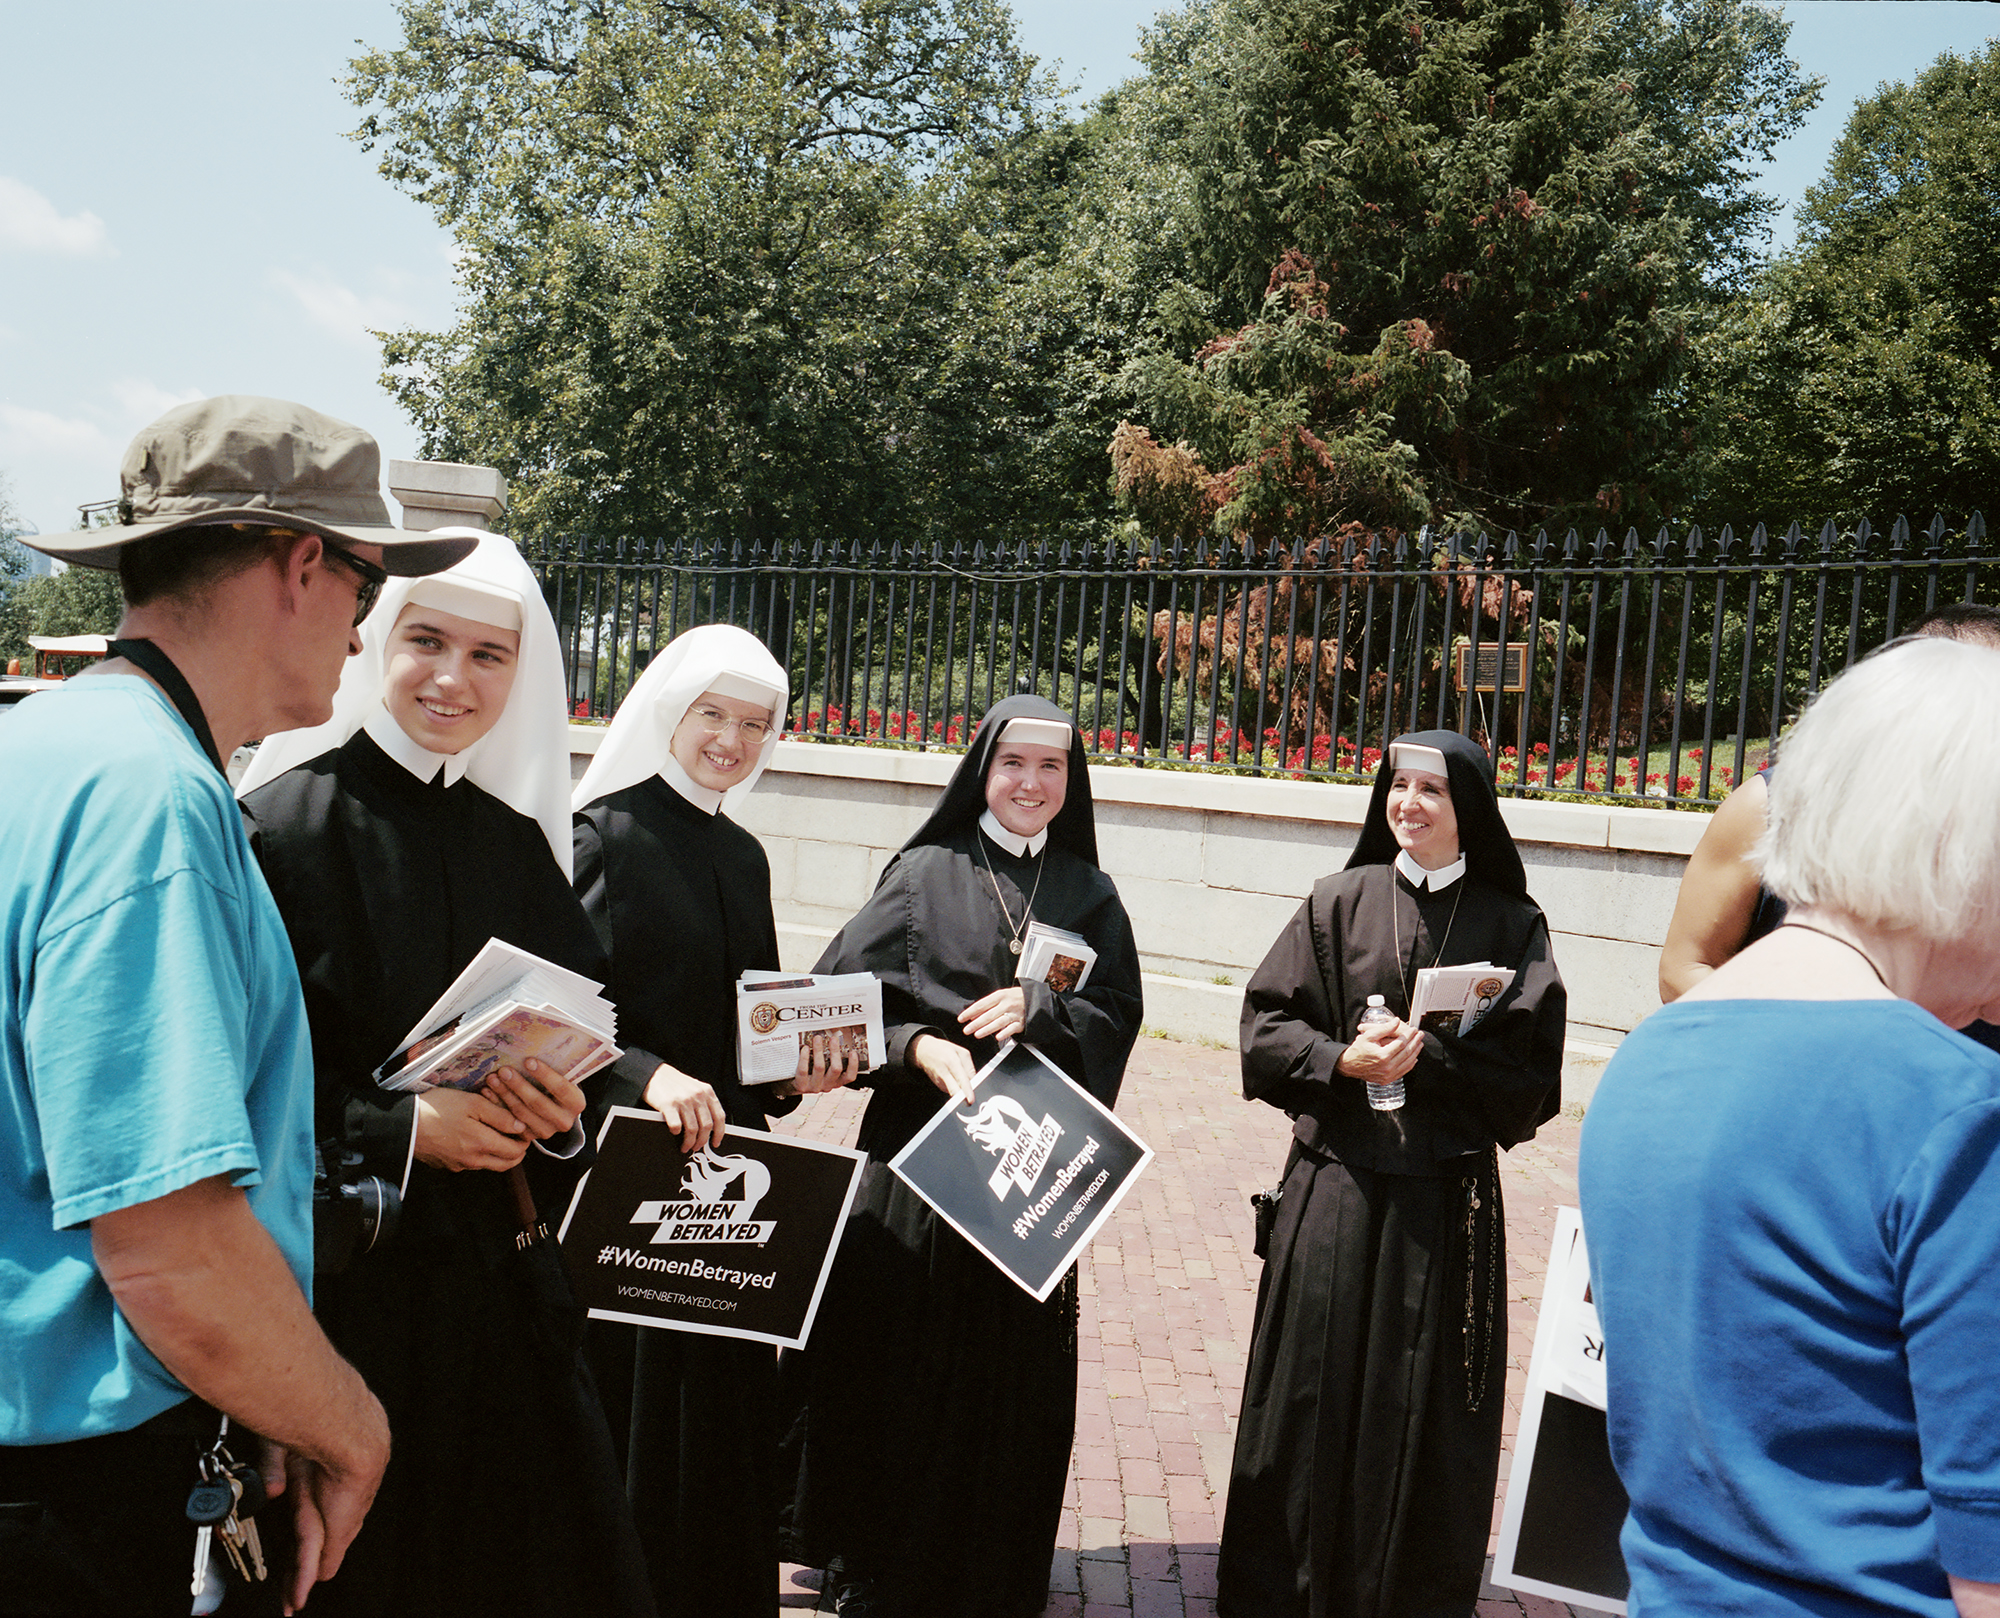 #Womenbetrayed Nuns. Boston, MA